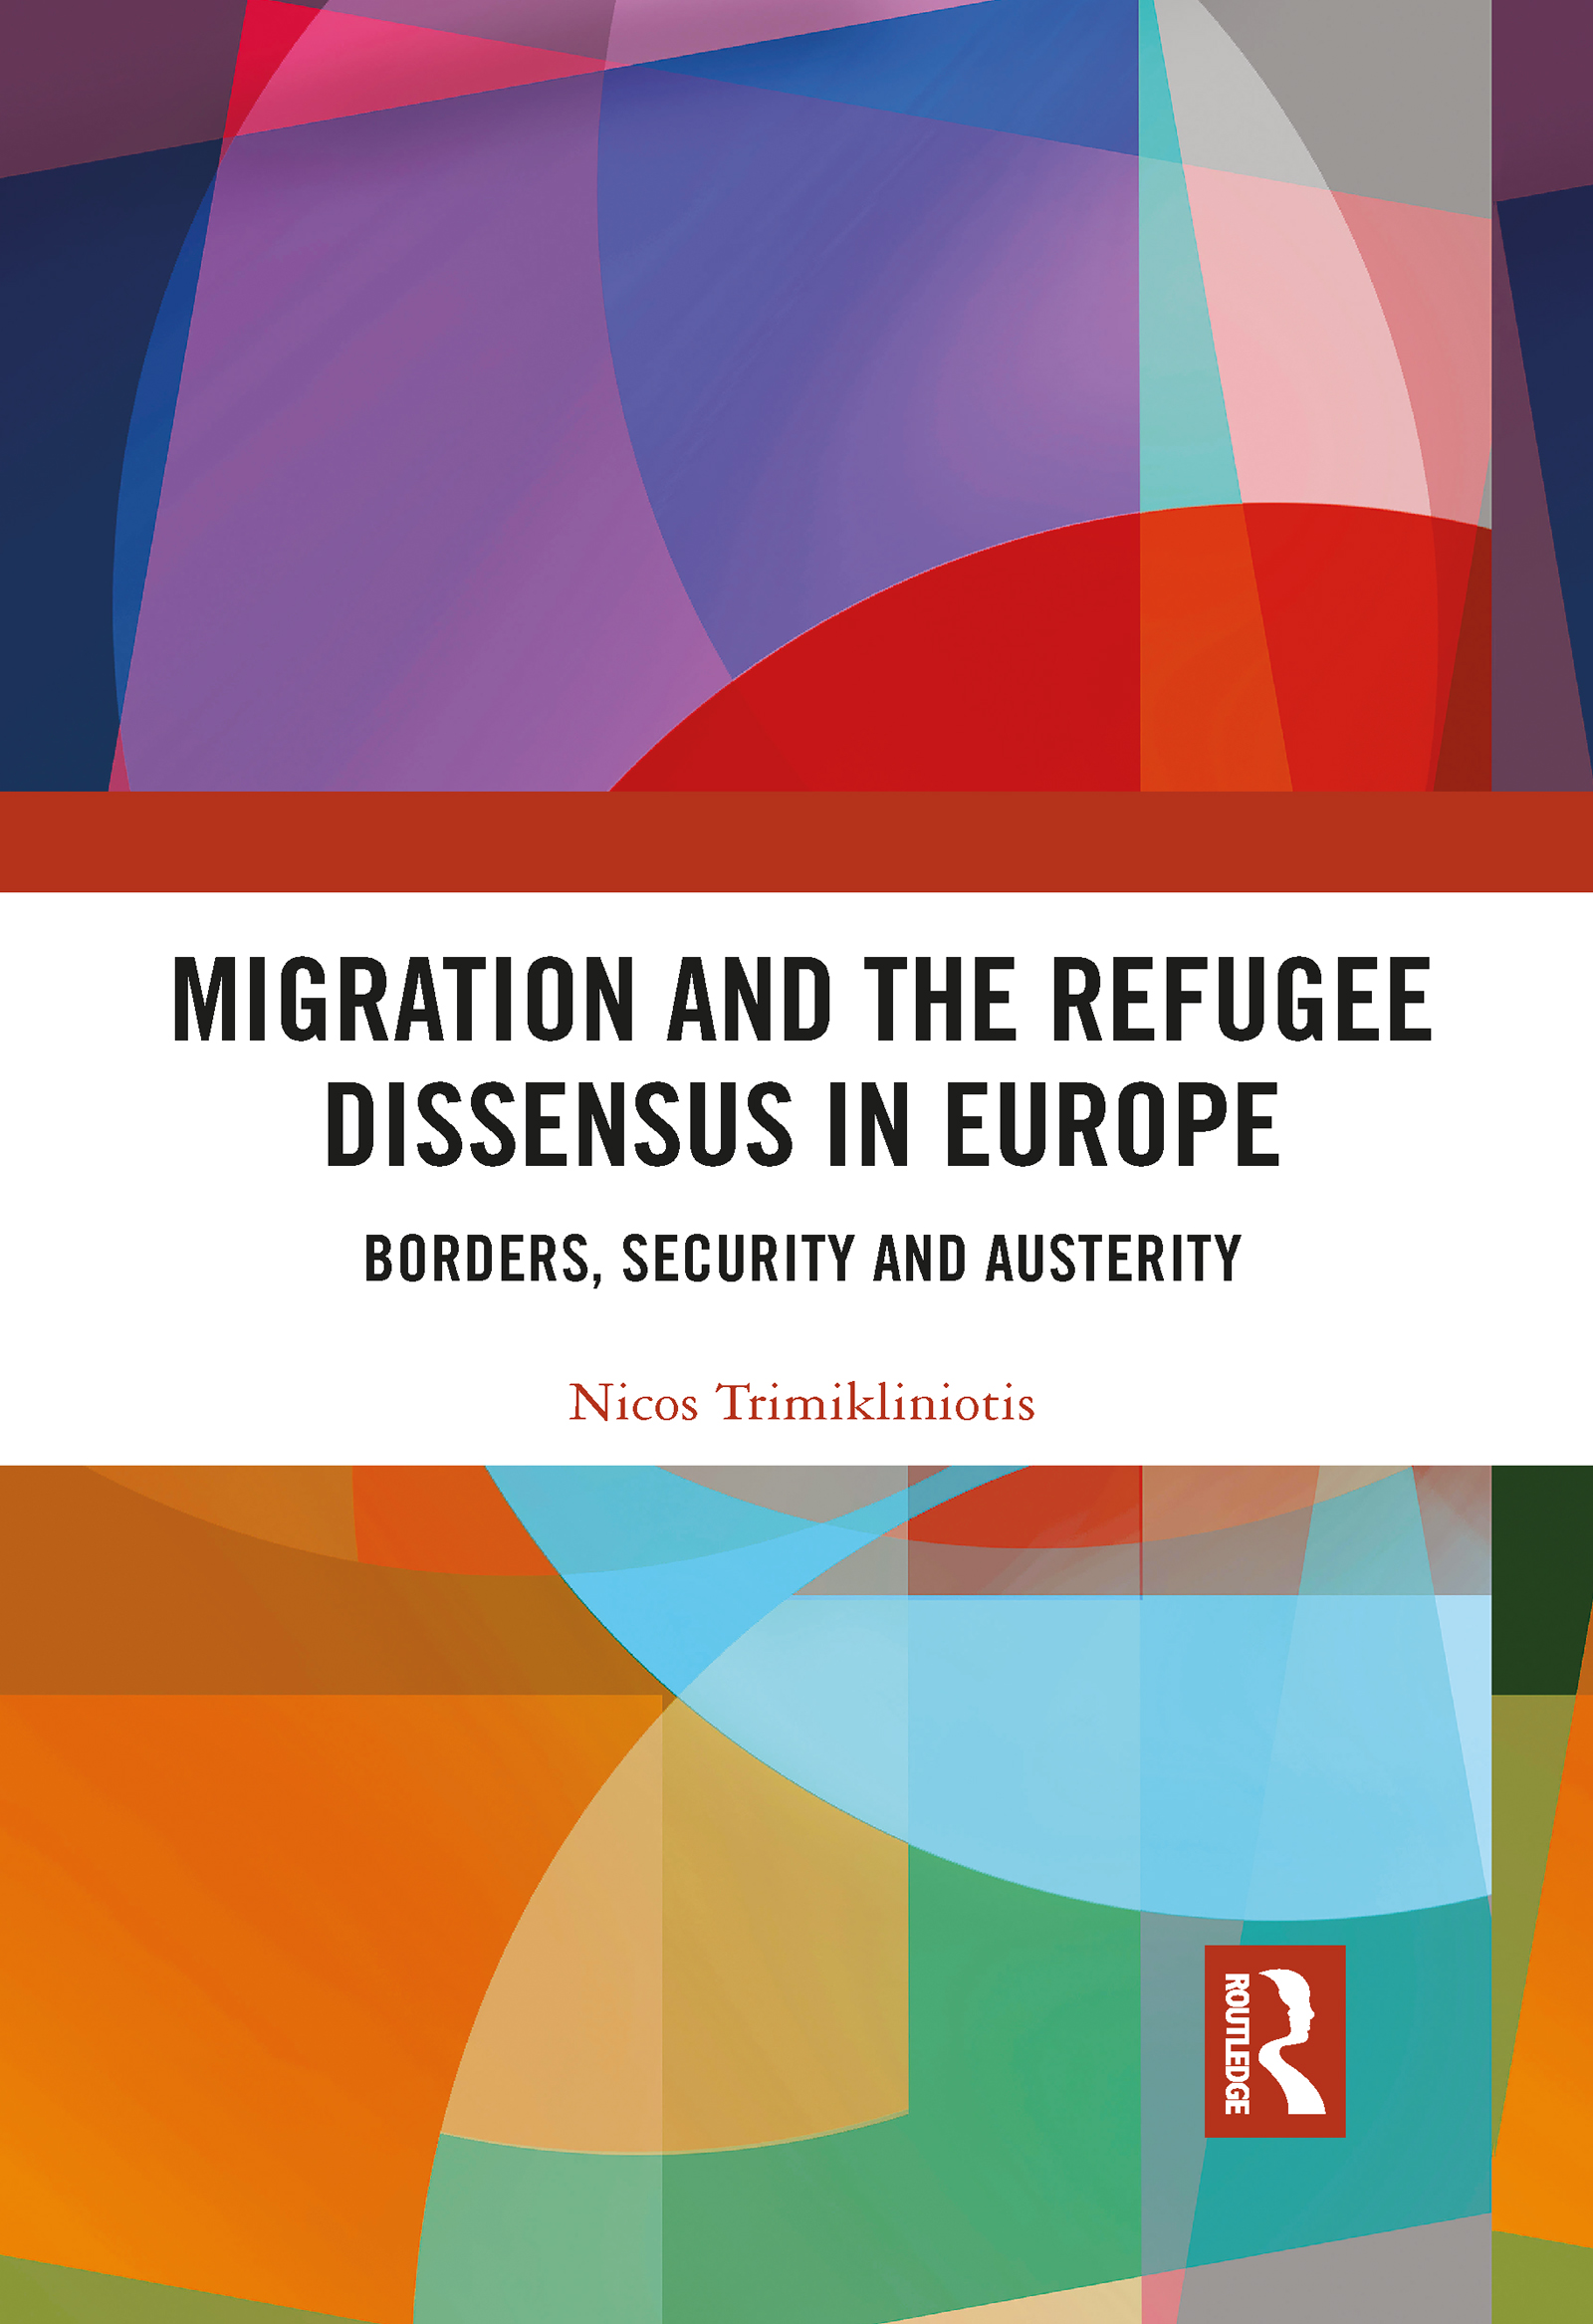 Migration and the Refugee Dissensus in Europe